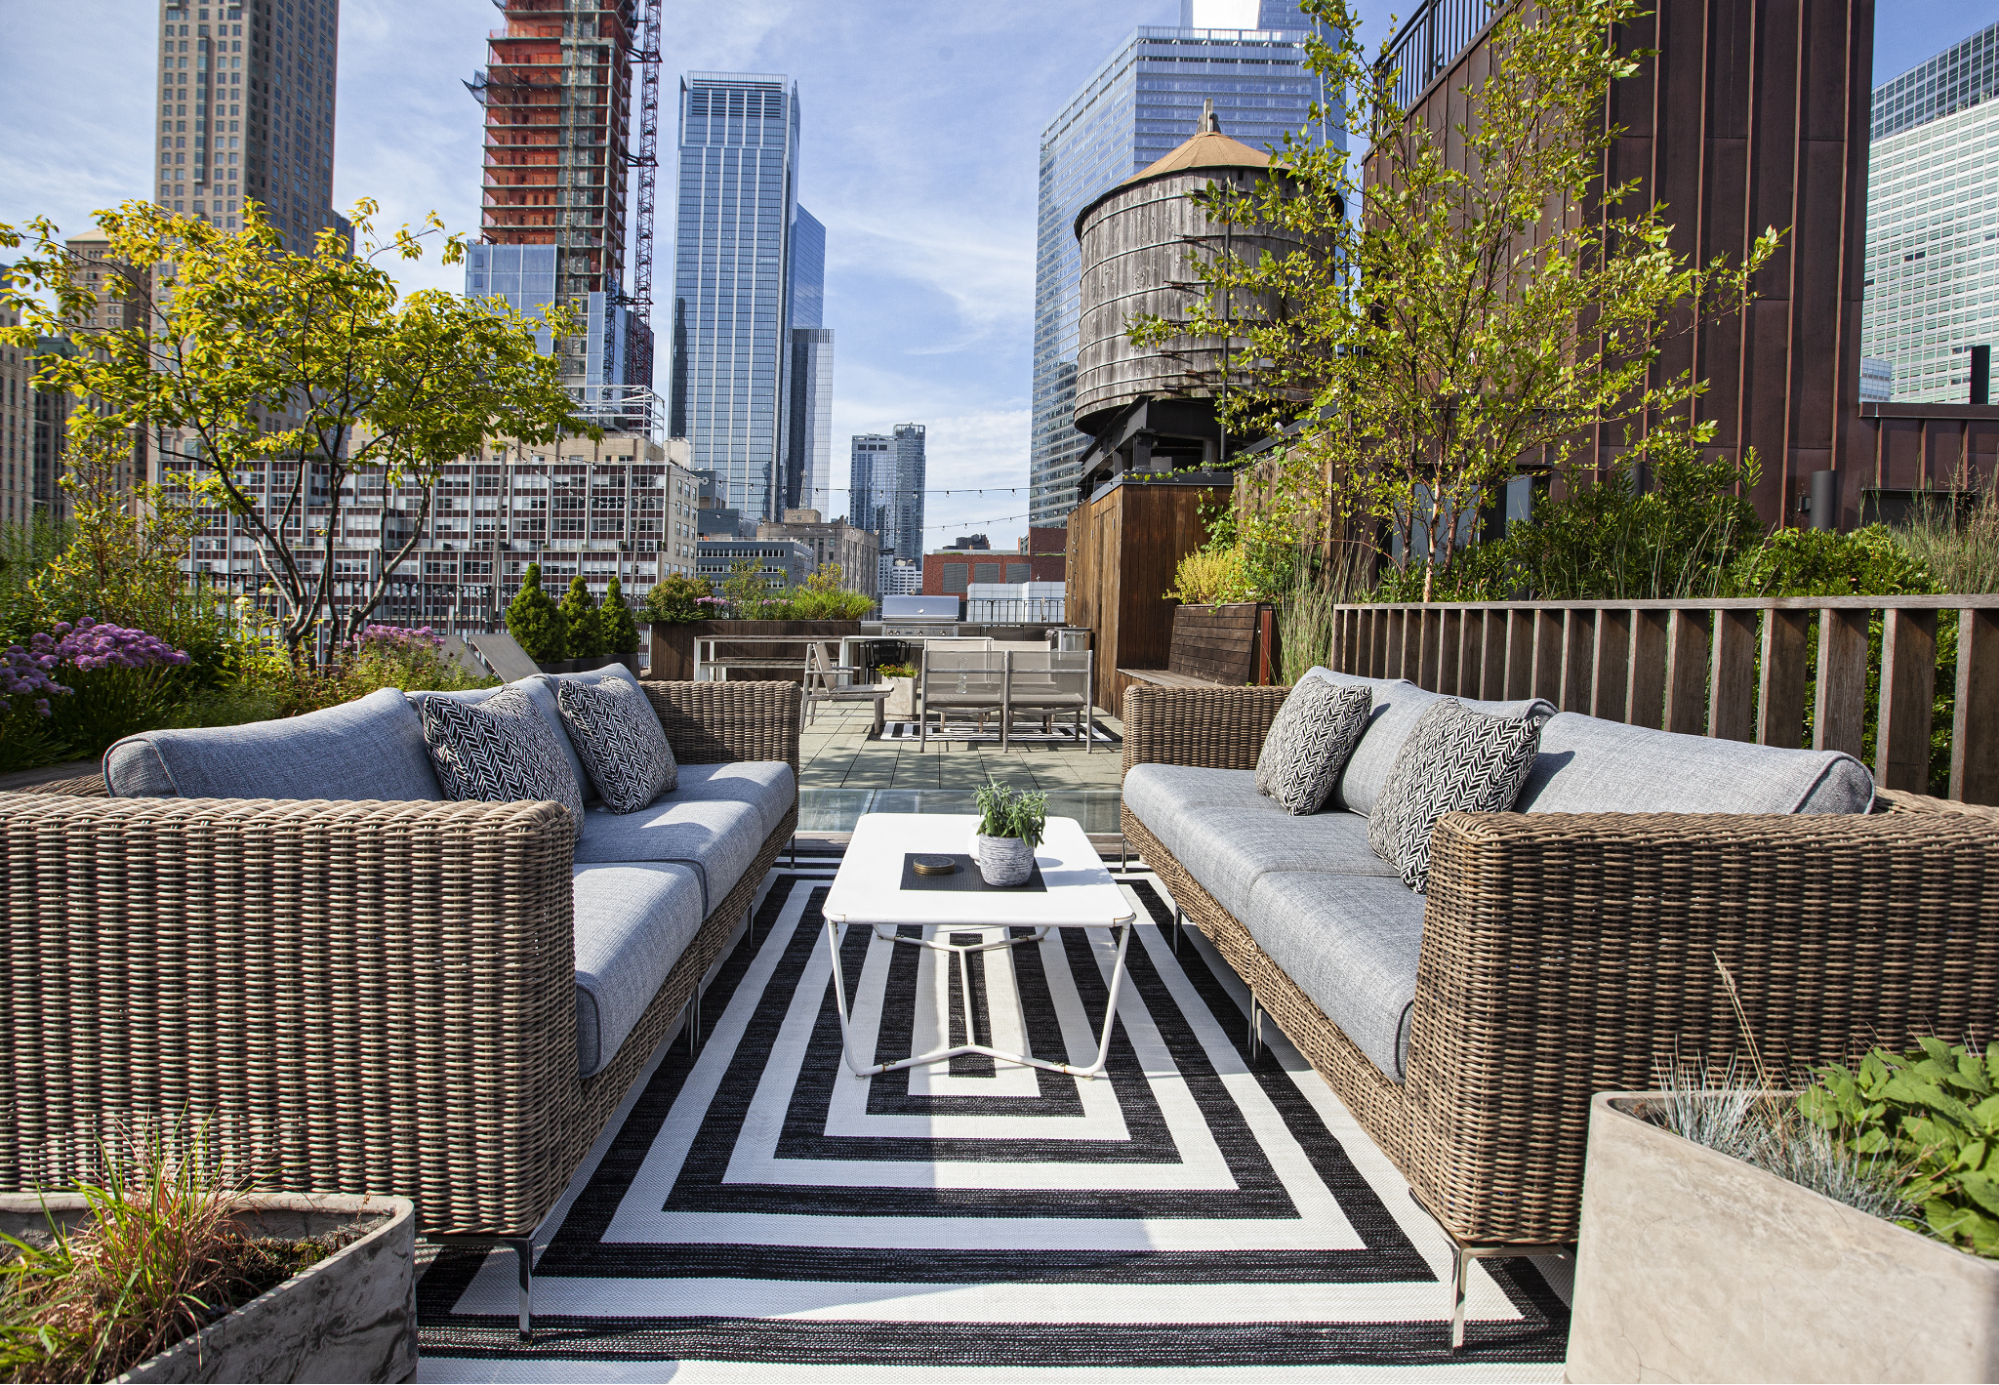 Wicker couches on rooftop patio